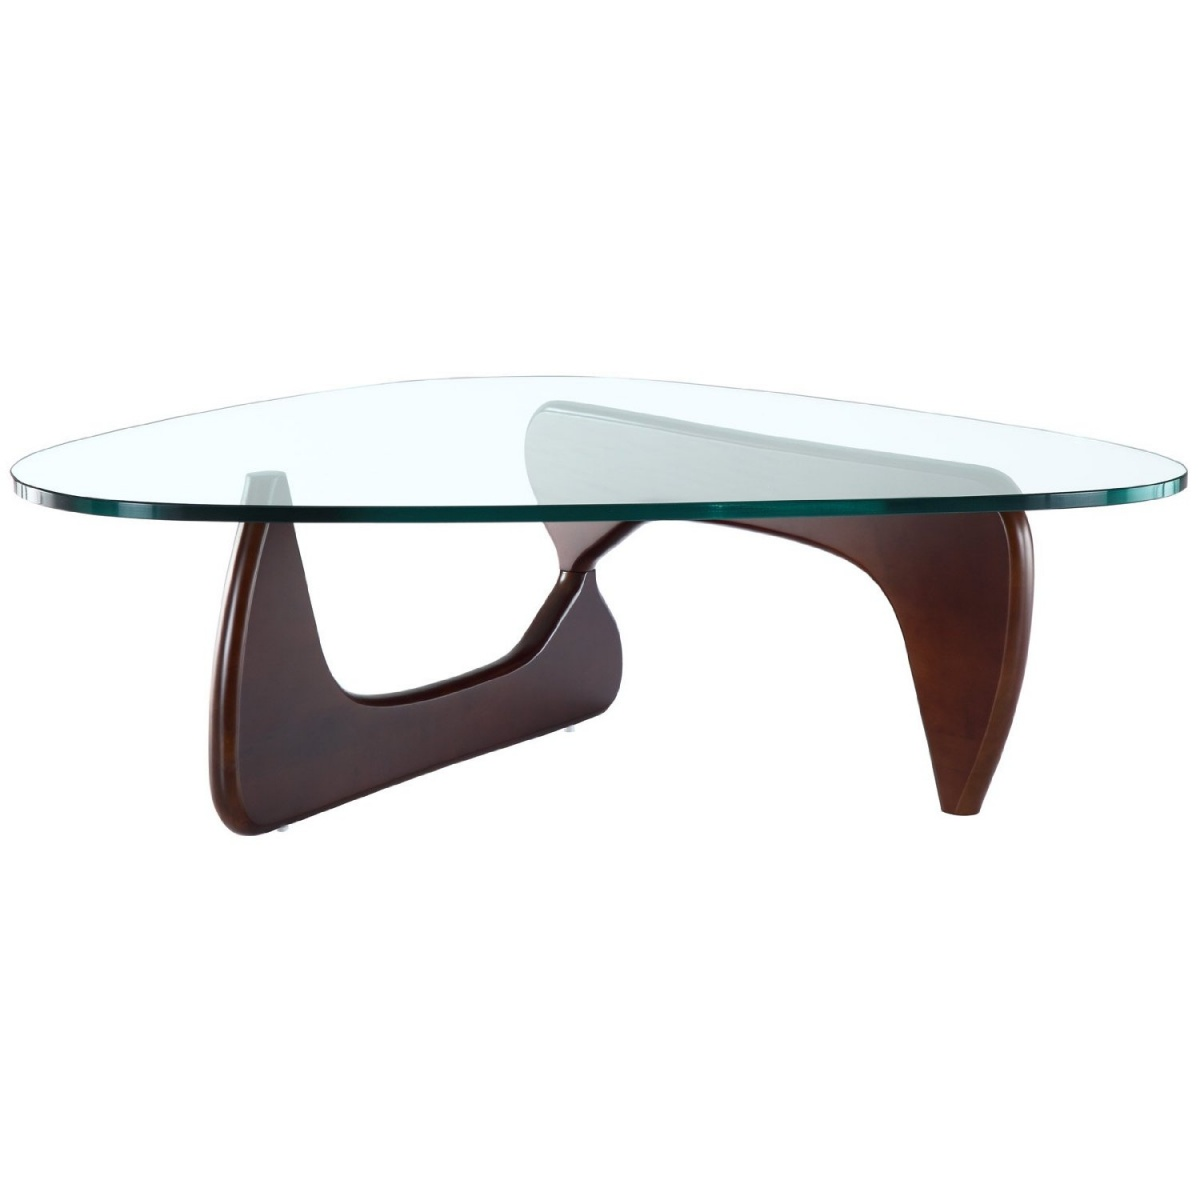 glass-modern-coffee-tables-this-coffee-table-is-the-epitomy-of-moderns-design-a-glass-top-and-two-curved-wood-legs-that-interlock-to-form-a-tripod (Image 10 of 10)